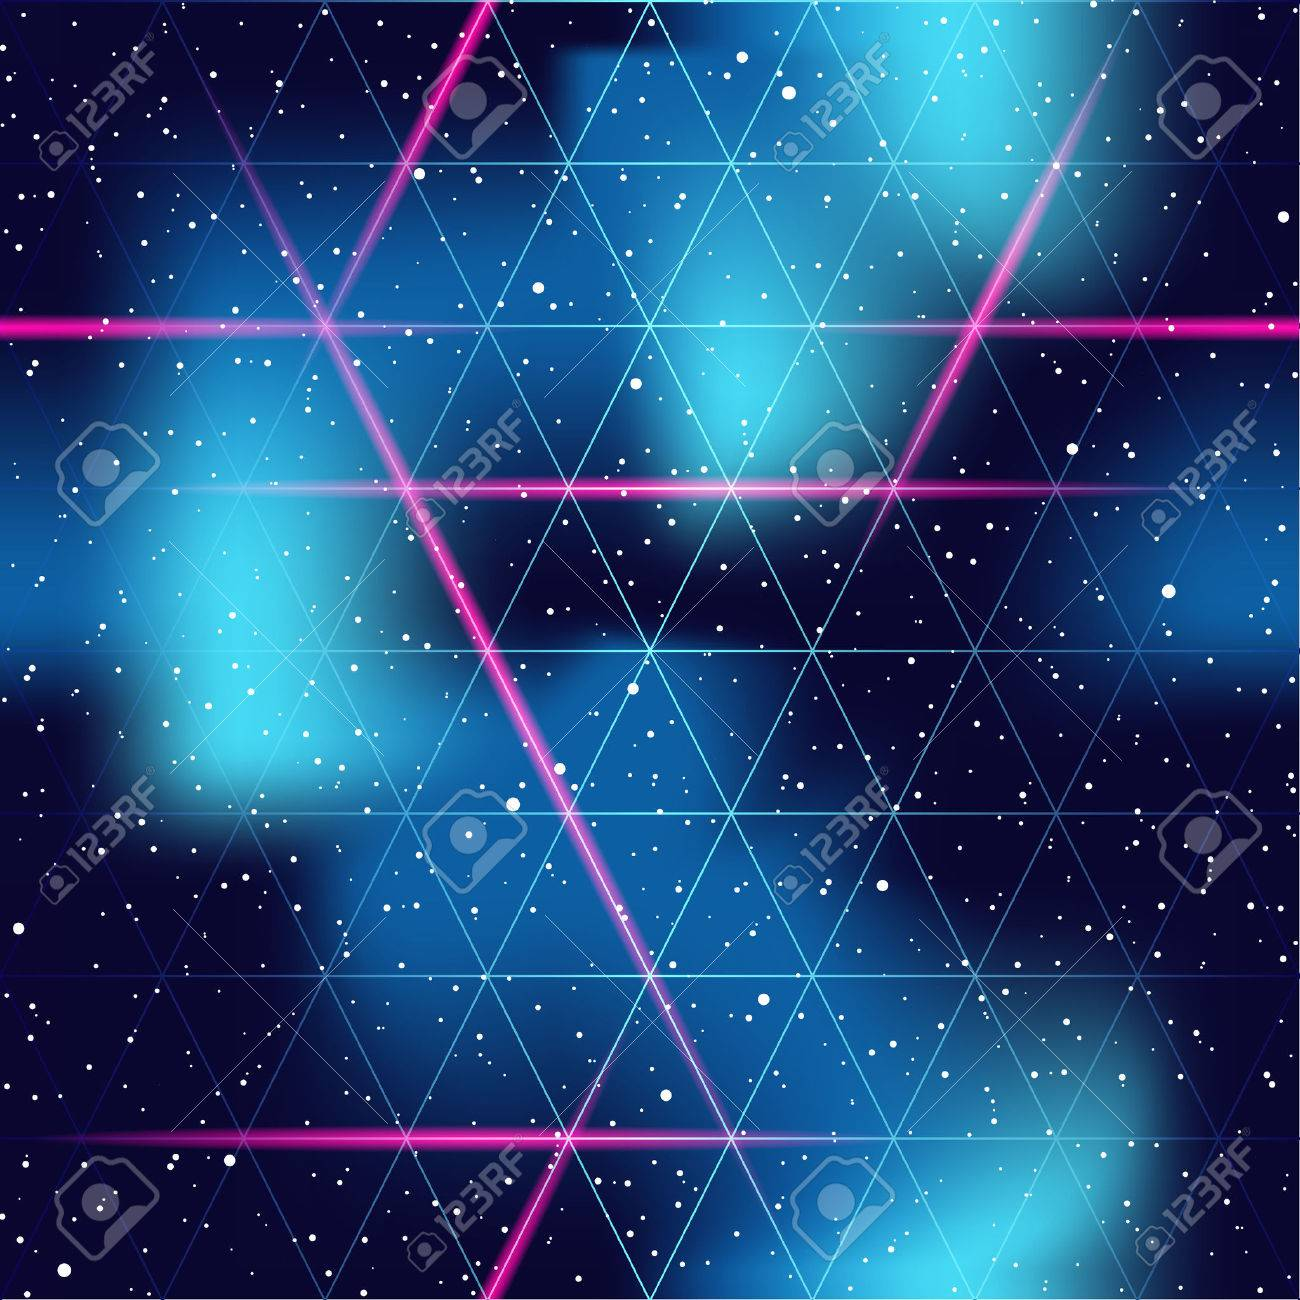 1980's inspired retrofuturistic seamless pattern. Graphics are grouped and in several layers for easy editing. The file can be scaled to any size - 52404989